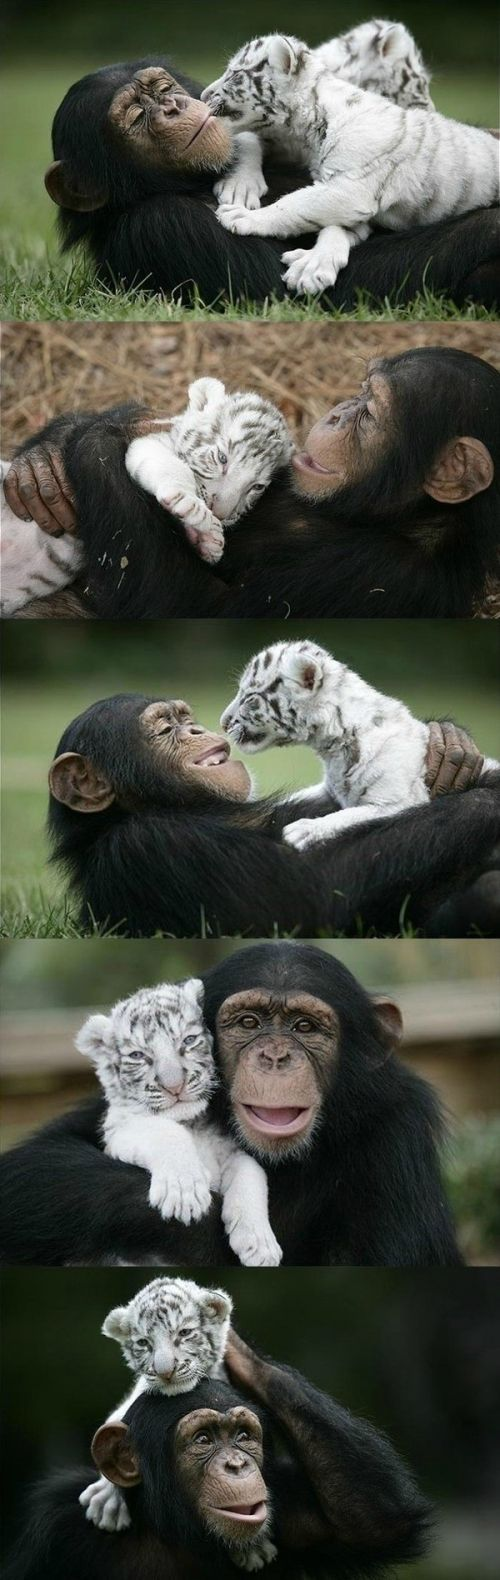 these are my 2 very favorite animals besides a great dane of course!  I have always loooved White Tigers and Monkeys!  These pics are perfect!  <3